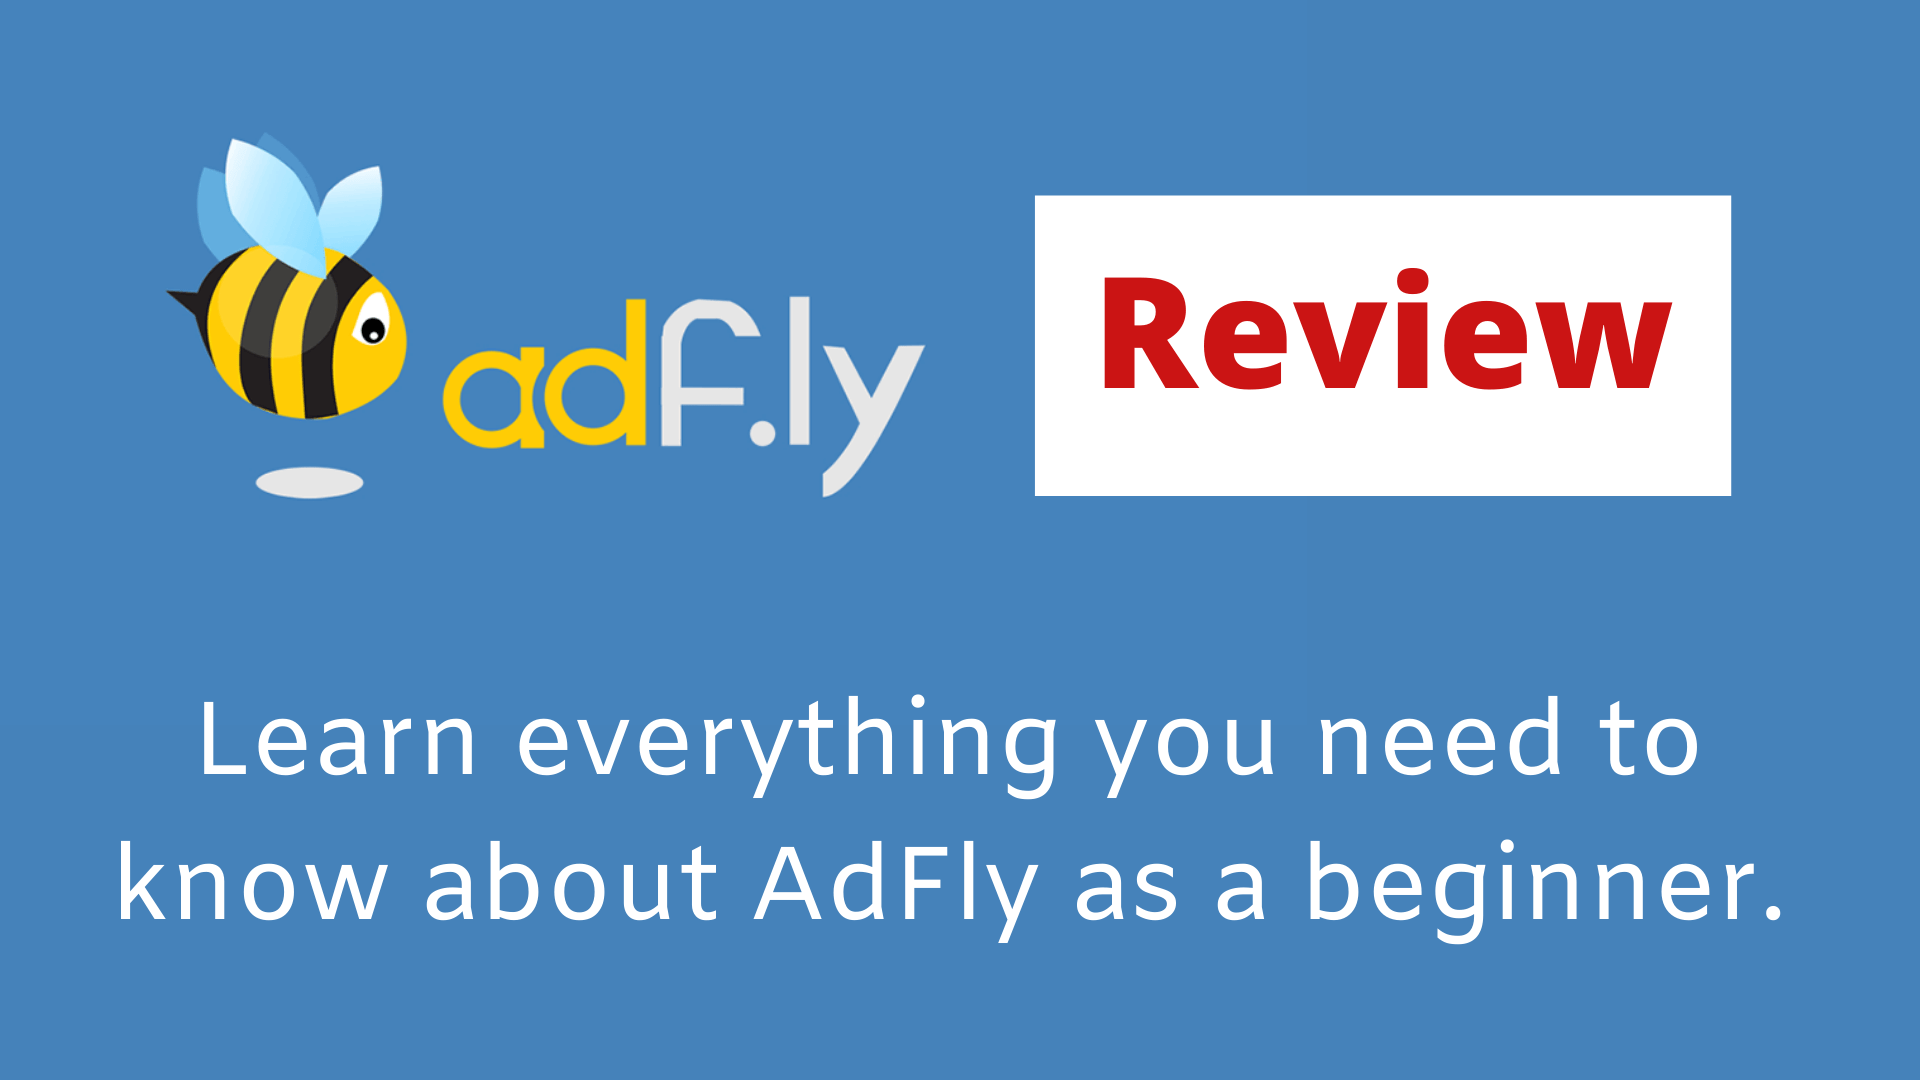 AdFly Review: Here's What They Don't Tell You